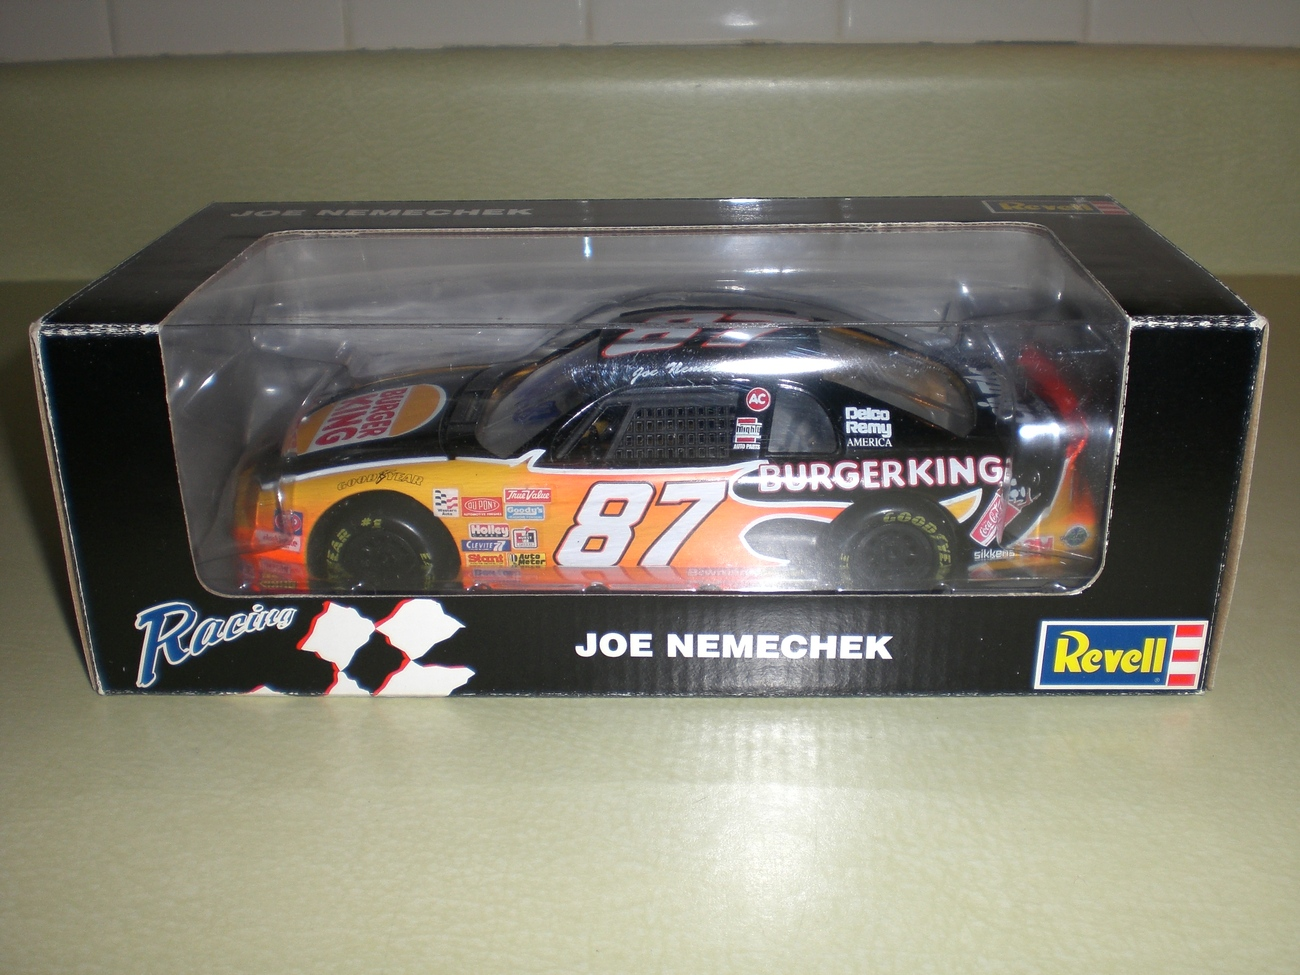 Joe Nemechek SIGNED Nascar 1/24 Burger King diecast car RARE